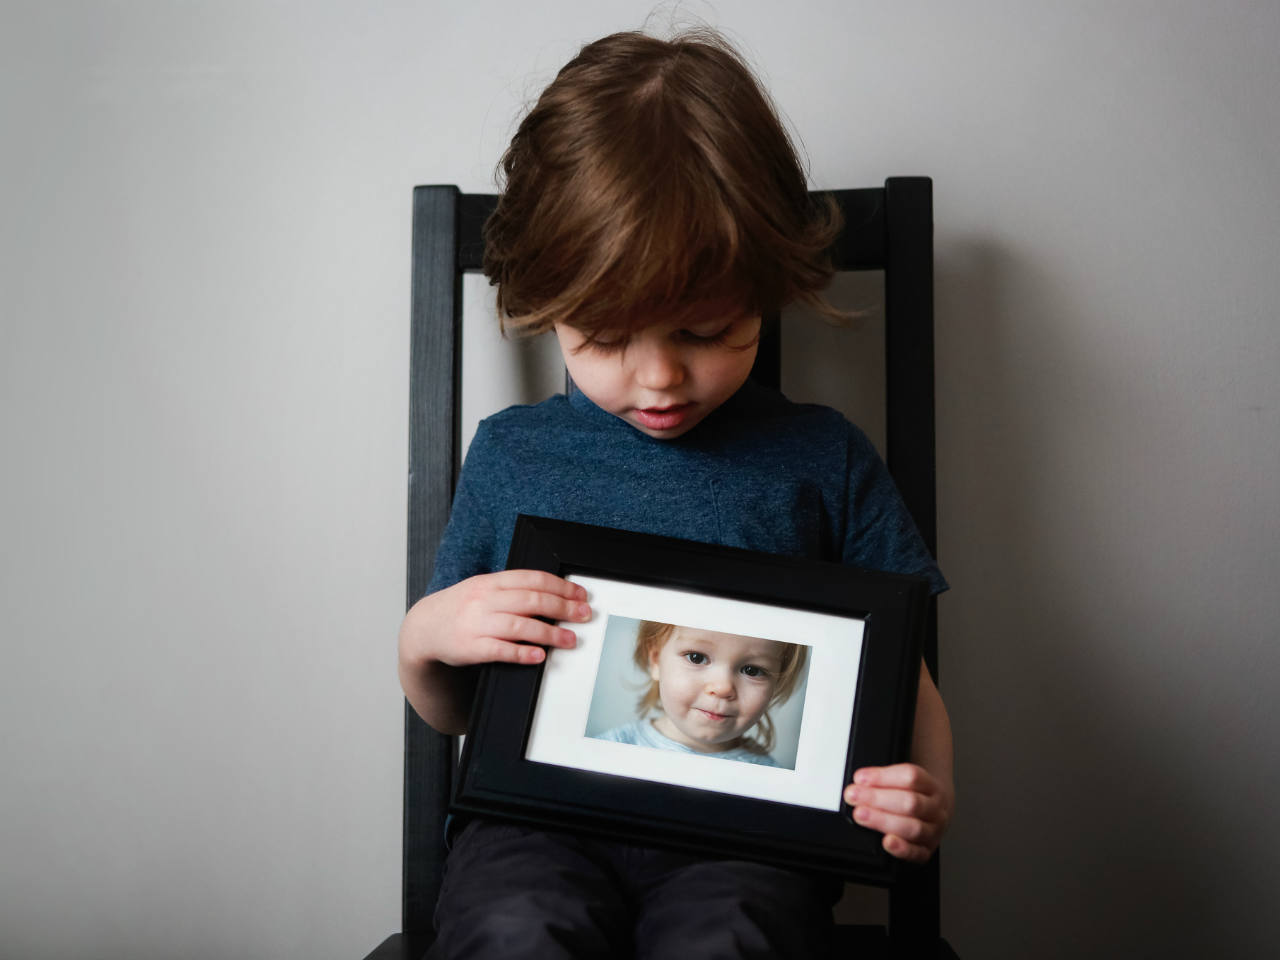 A little boy holding a picture of another boy